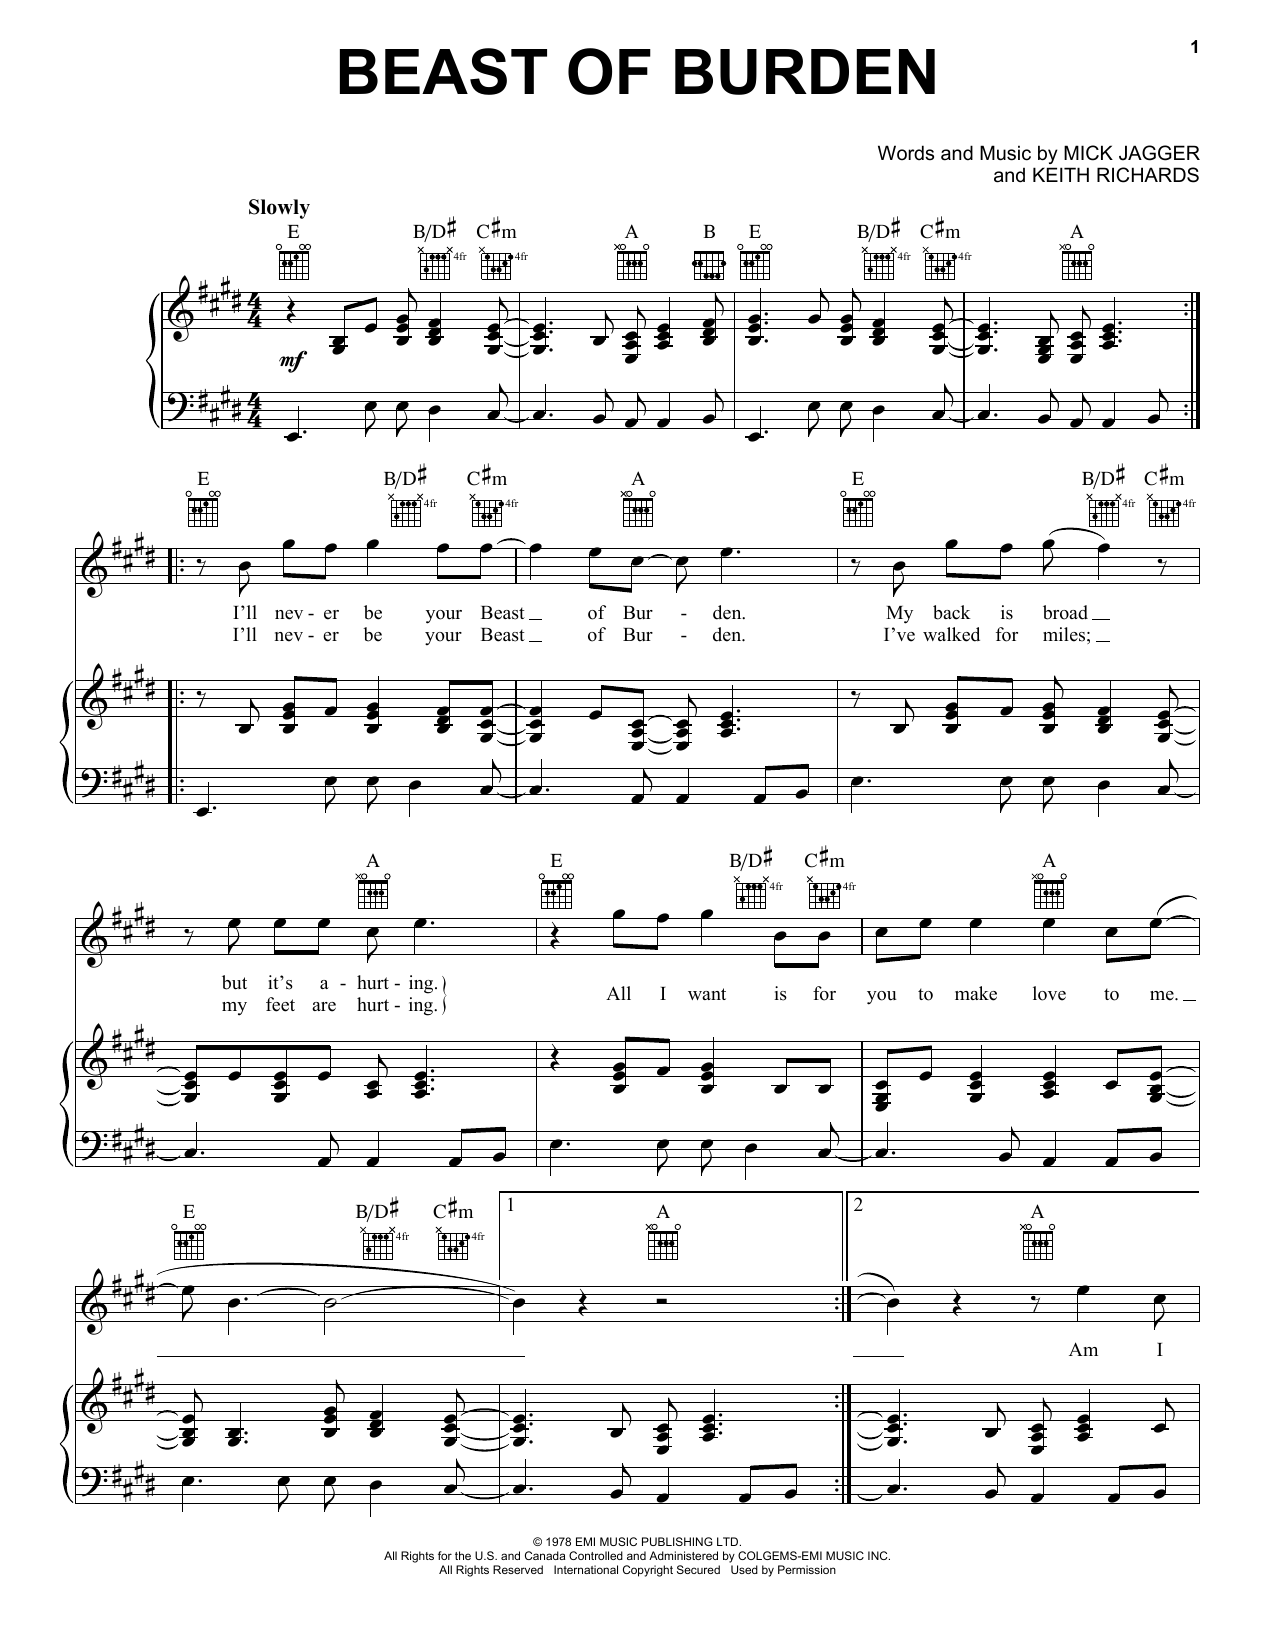 The Rolling Stones 'Beast Of Burden' Sheet Music Notes, Chords | Download  Printable Piano, Vocal & Guitar (Right-Hand Melody) - SKU: 16606